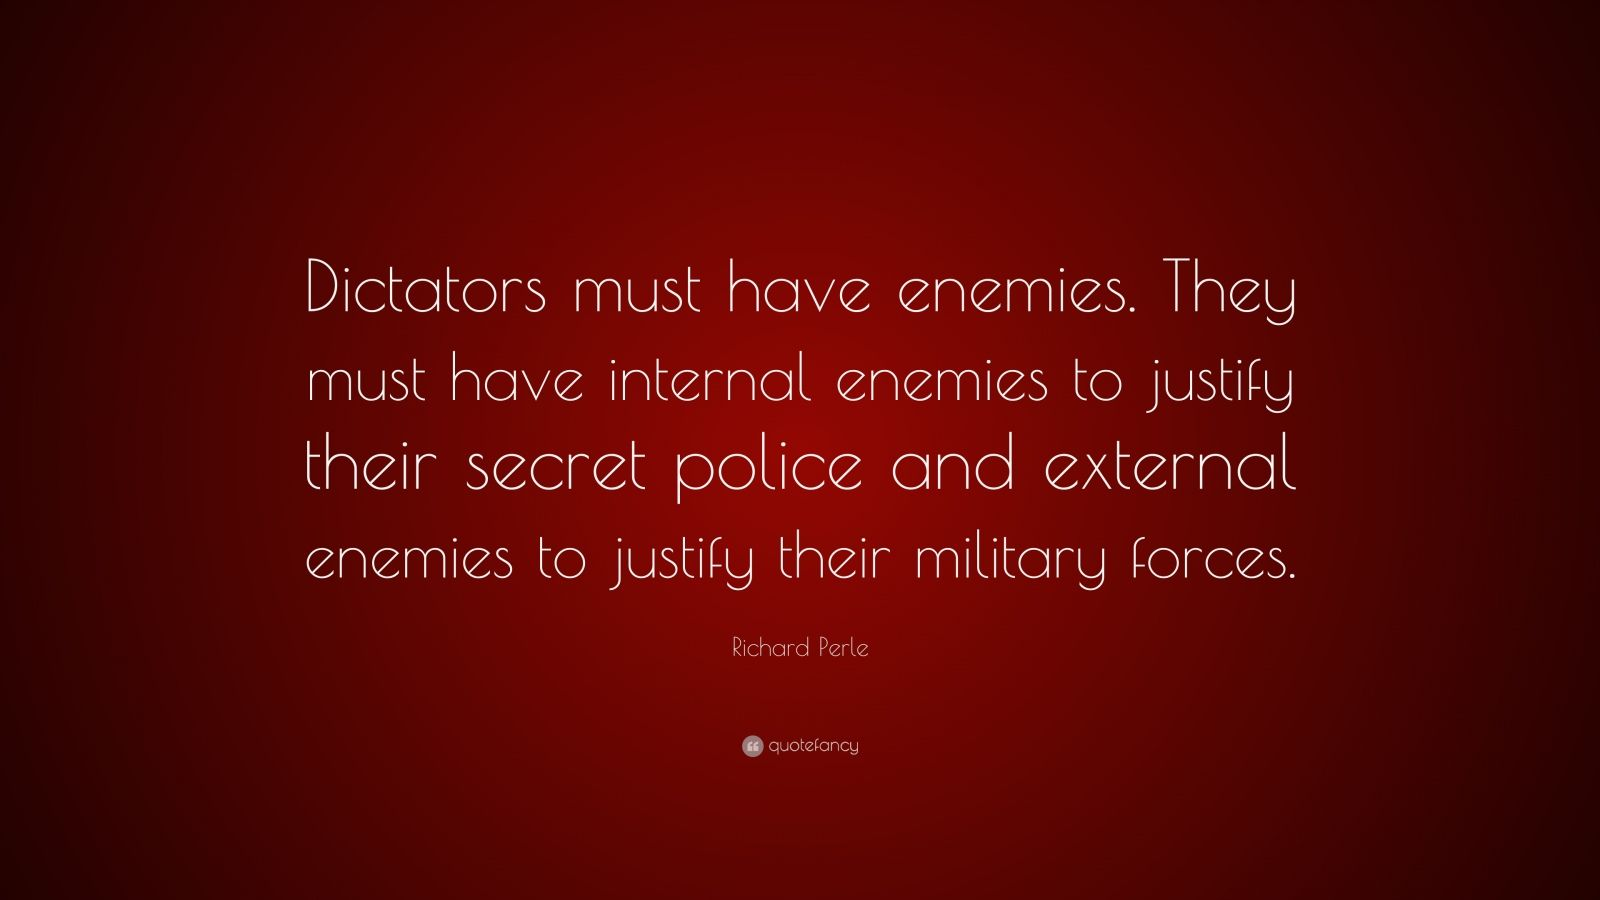 """Richard Perle Quote: """"Dictators must have enemies. They must have internal enemies to justify their secret police and external enemies to justify their military forces."""""""